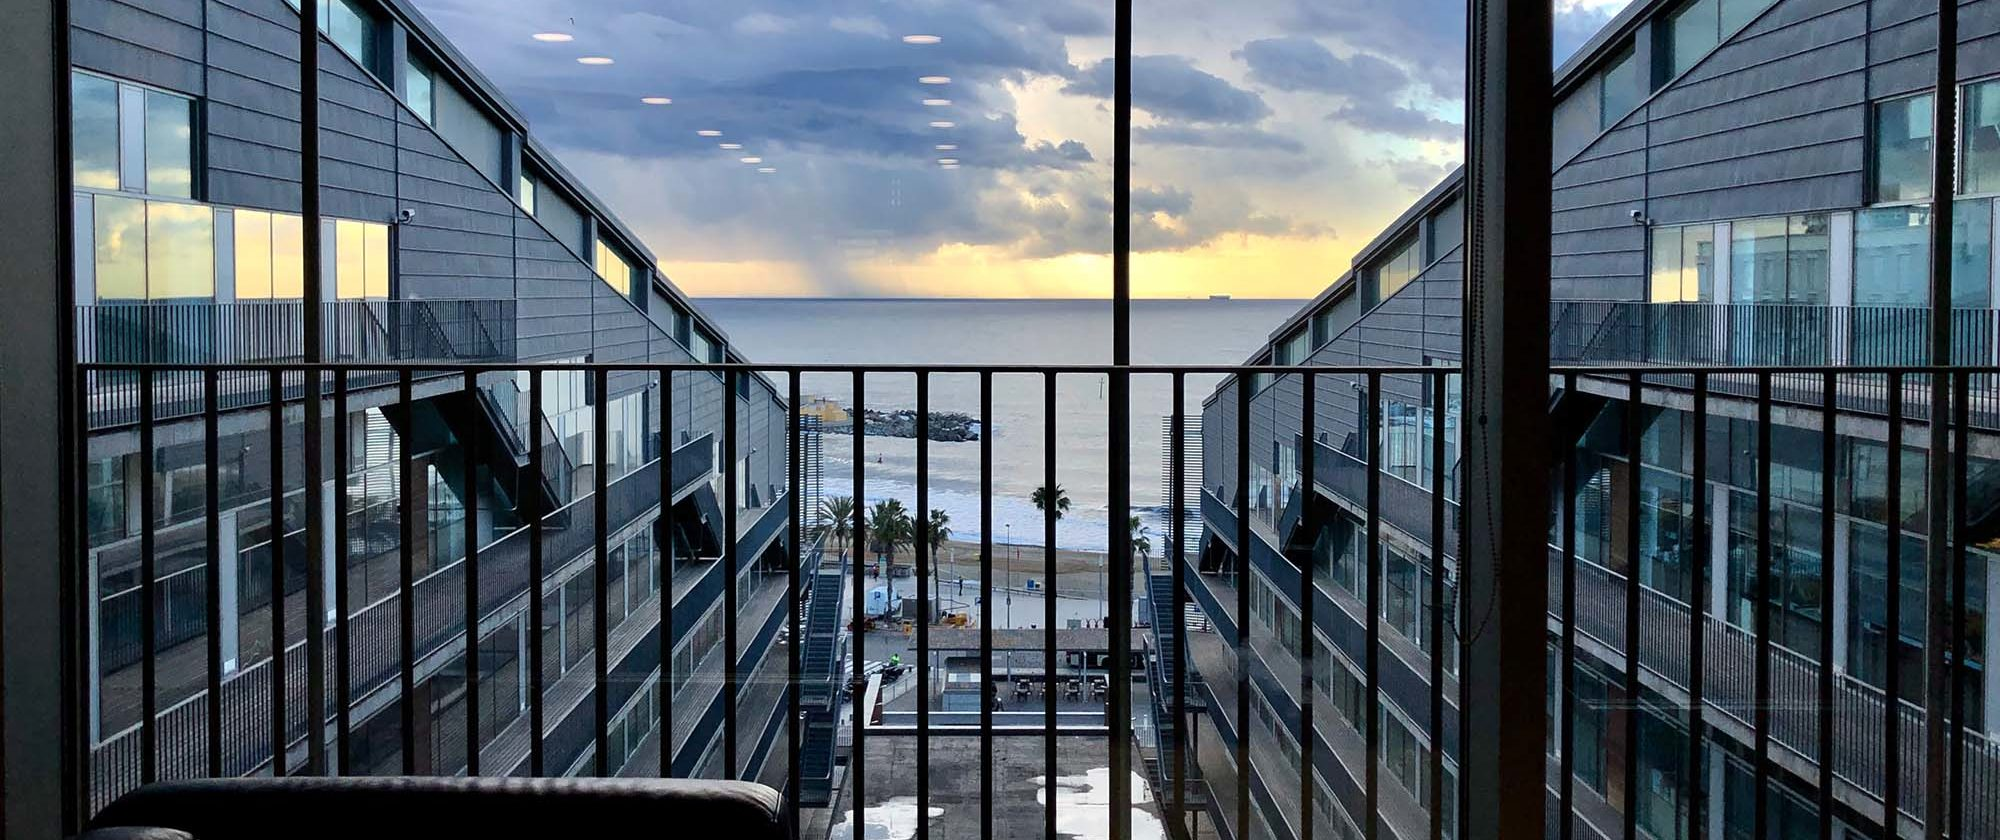 The sea views from the PRBB building are something our many vistors highly appreciate. Photo by Nestor Saiz Arenales.